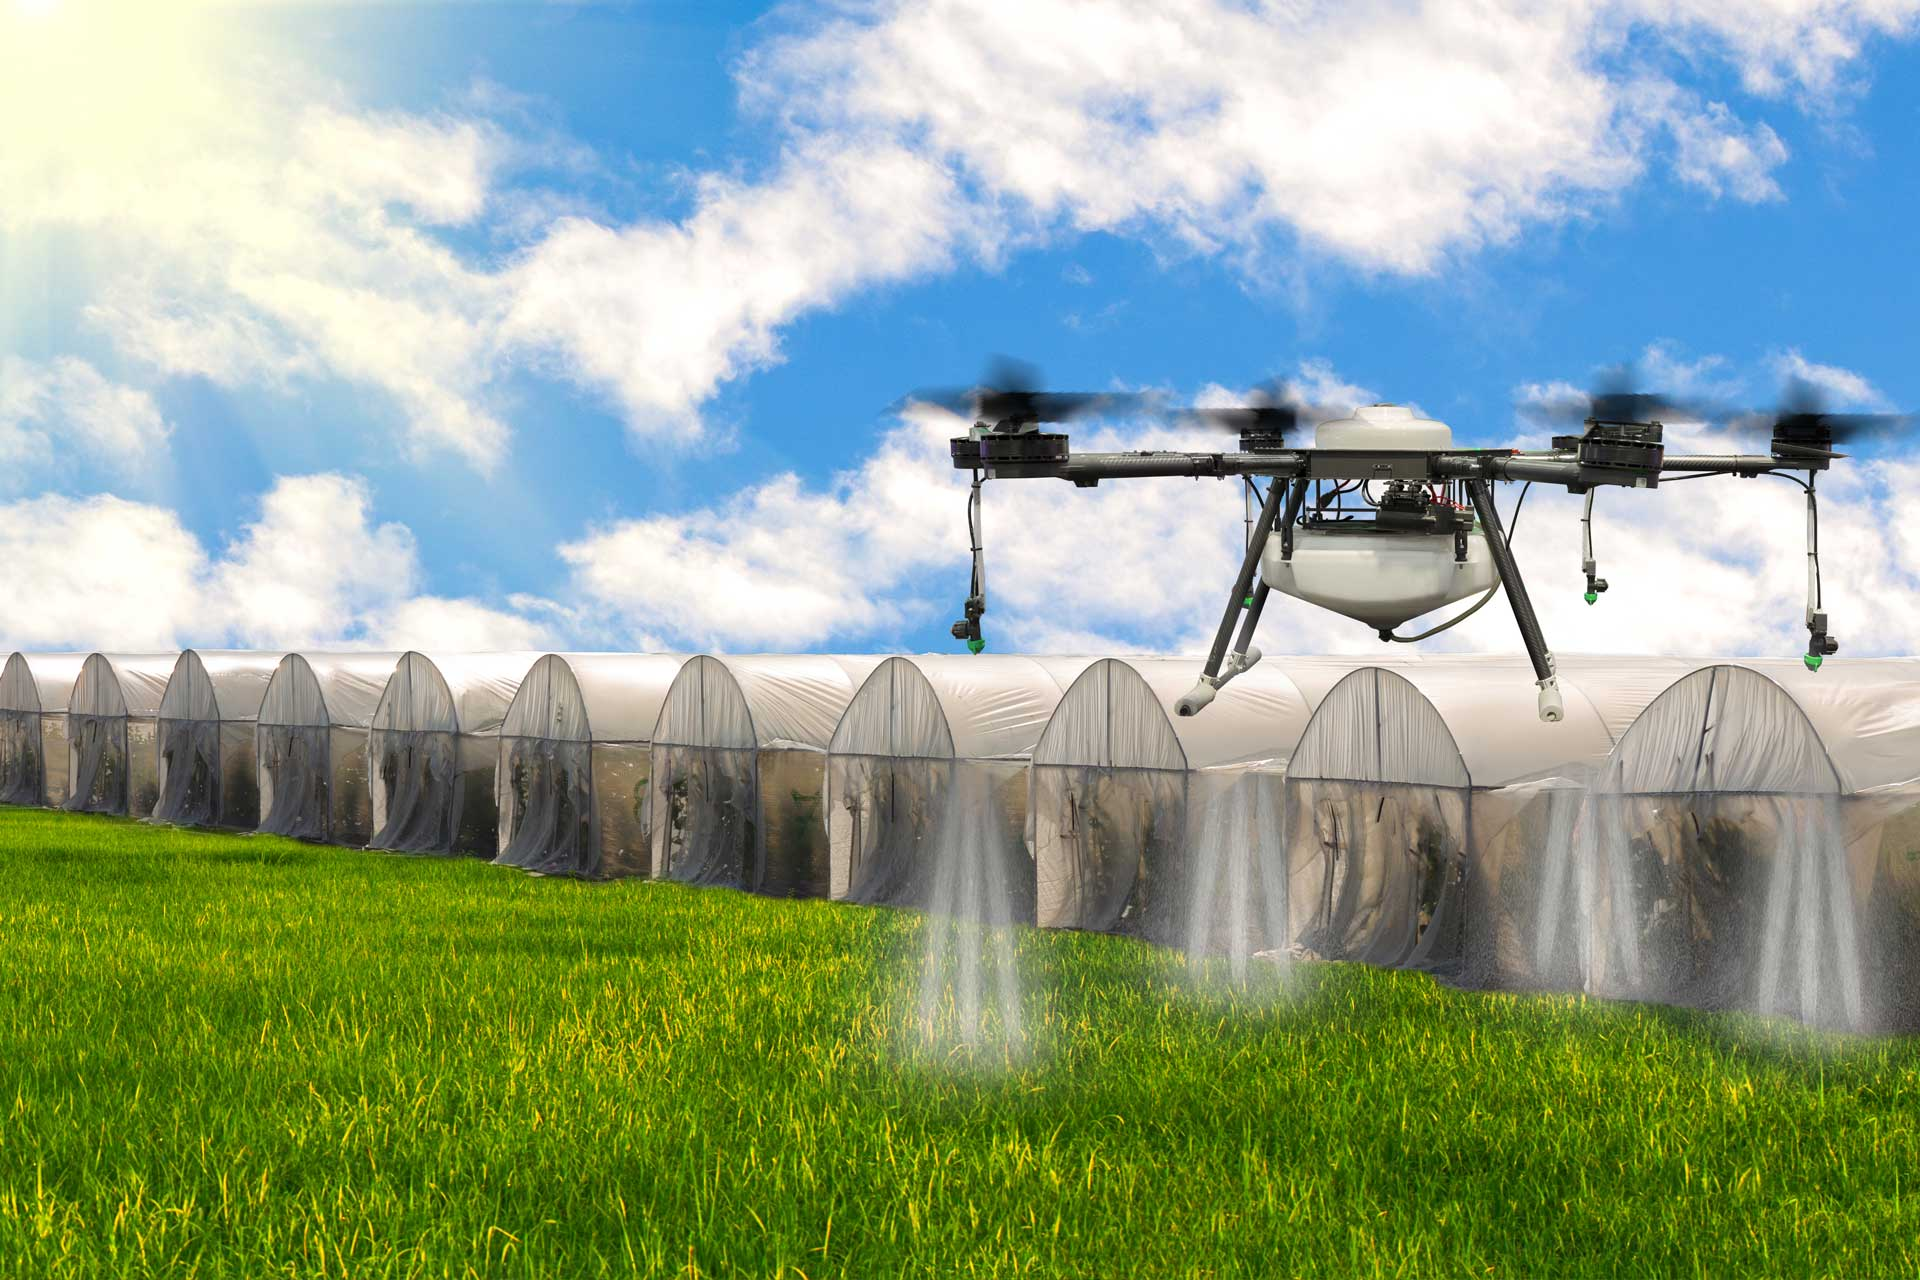 Crop Spraying Drones